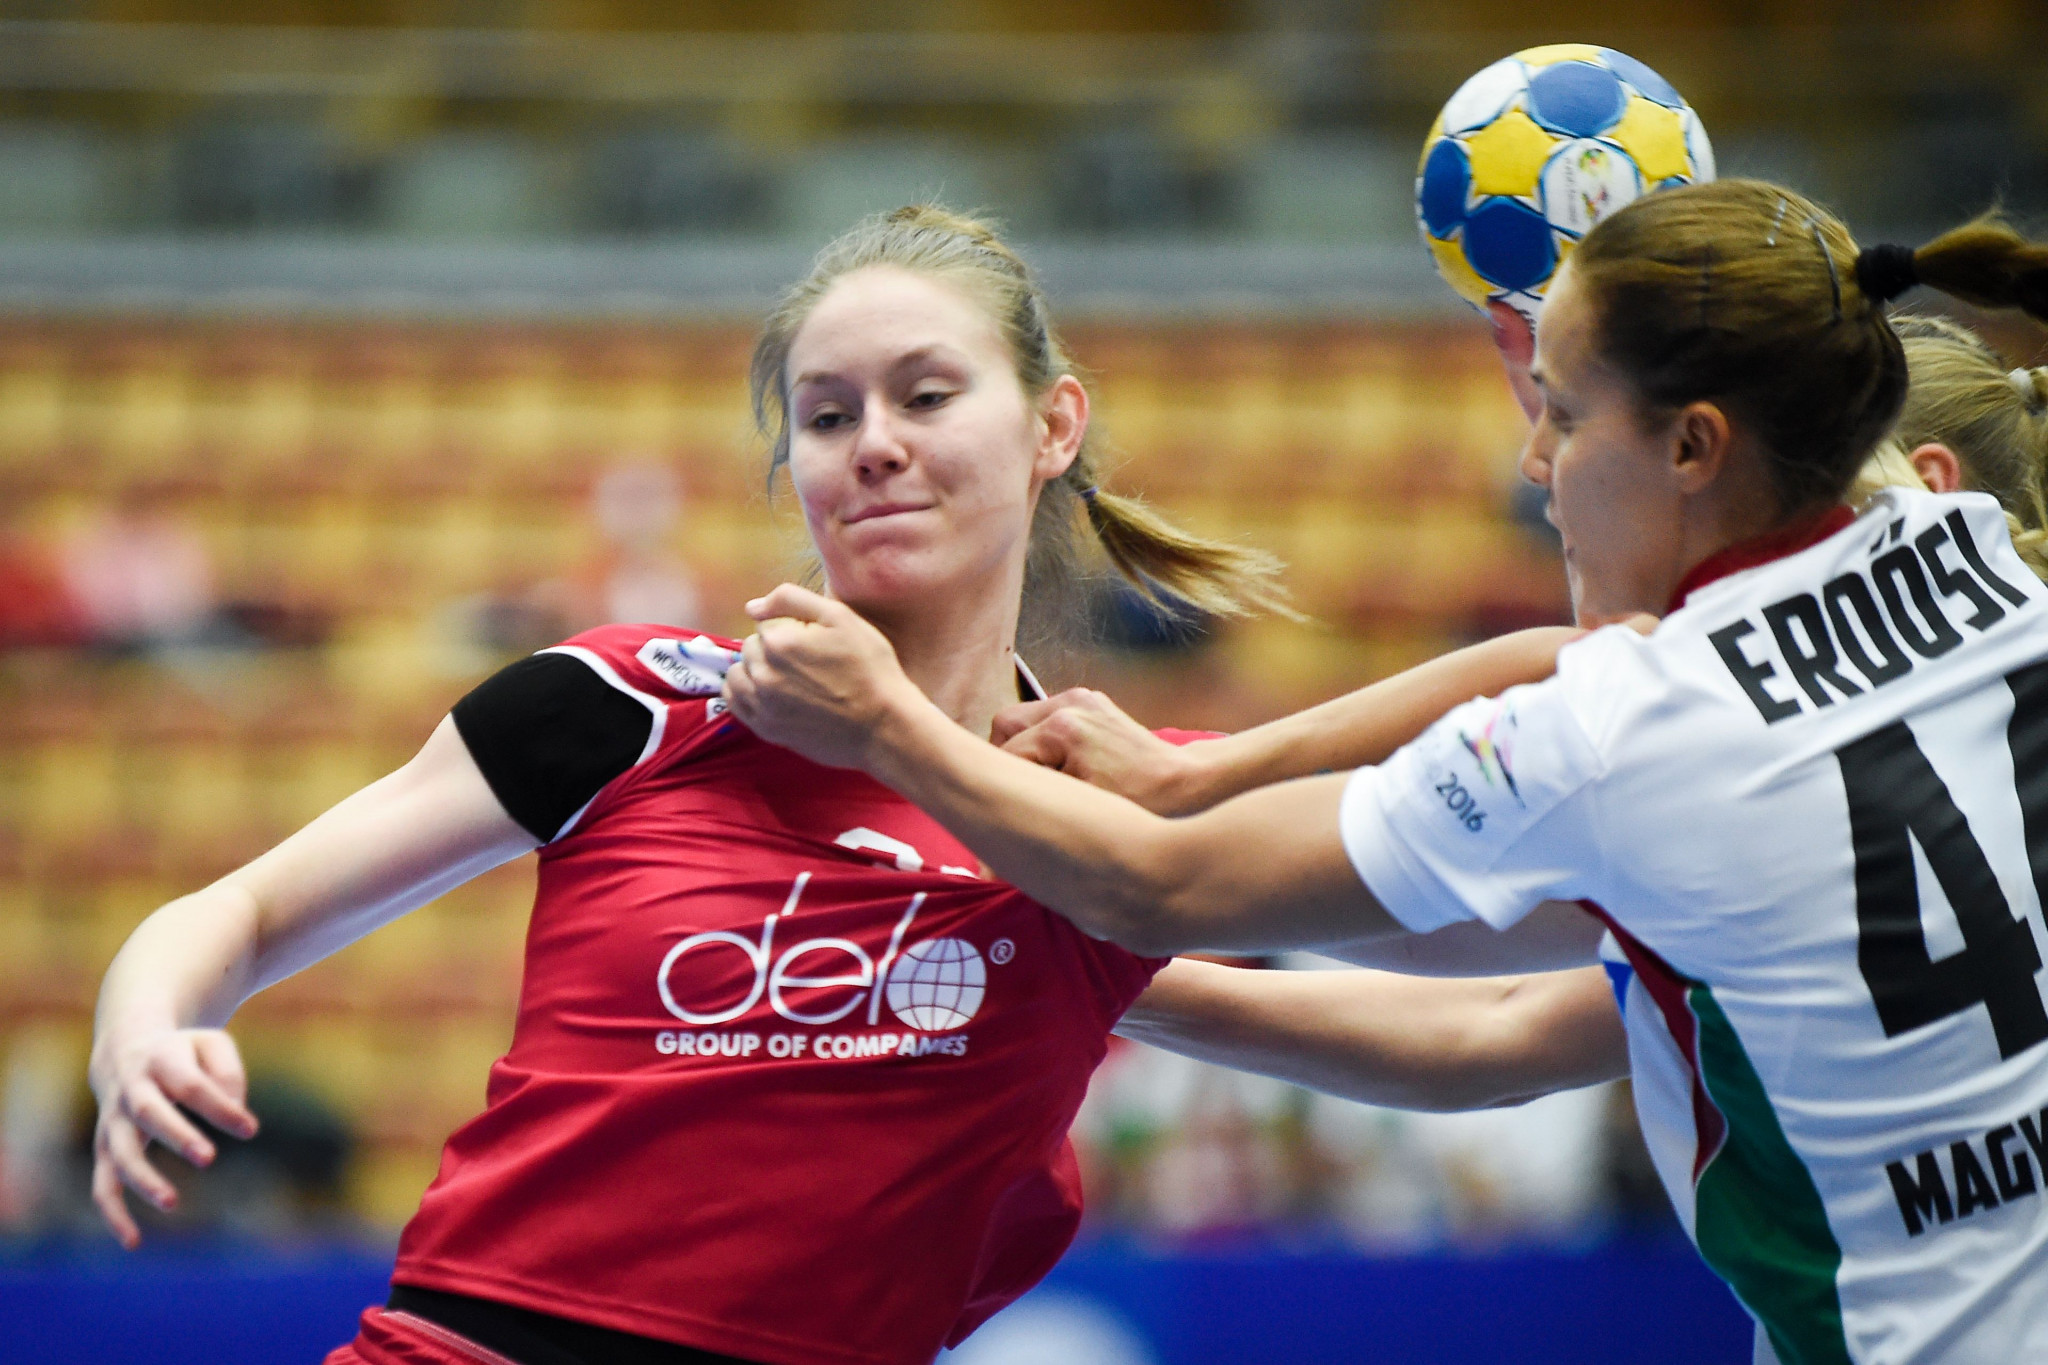 Antonina Skorobogatchenko, in red, is one of three Russian teenage handball players to be suspended for 20 months following a positive drugs test for meldonium ©Getty Images